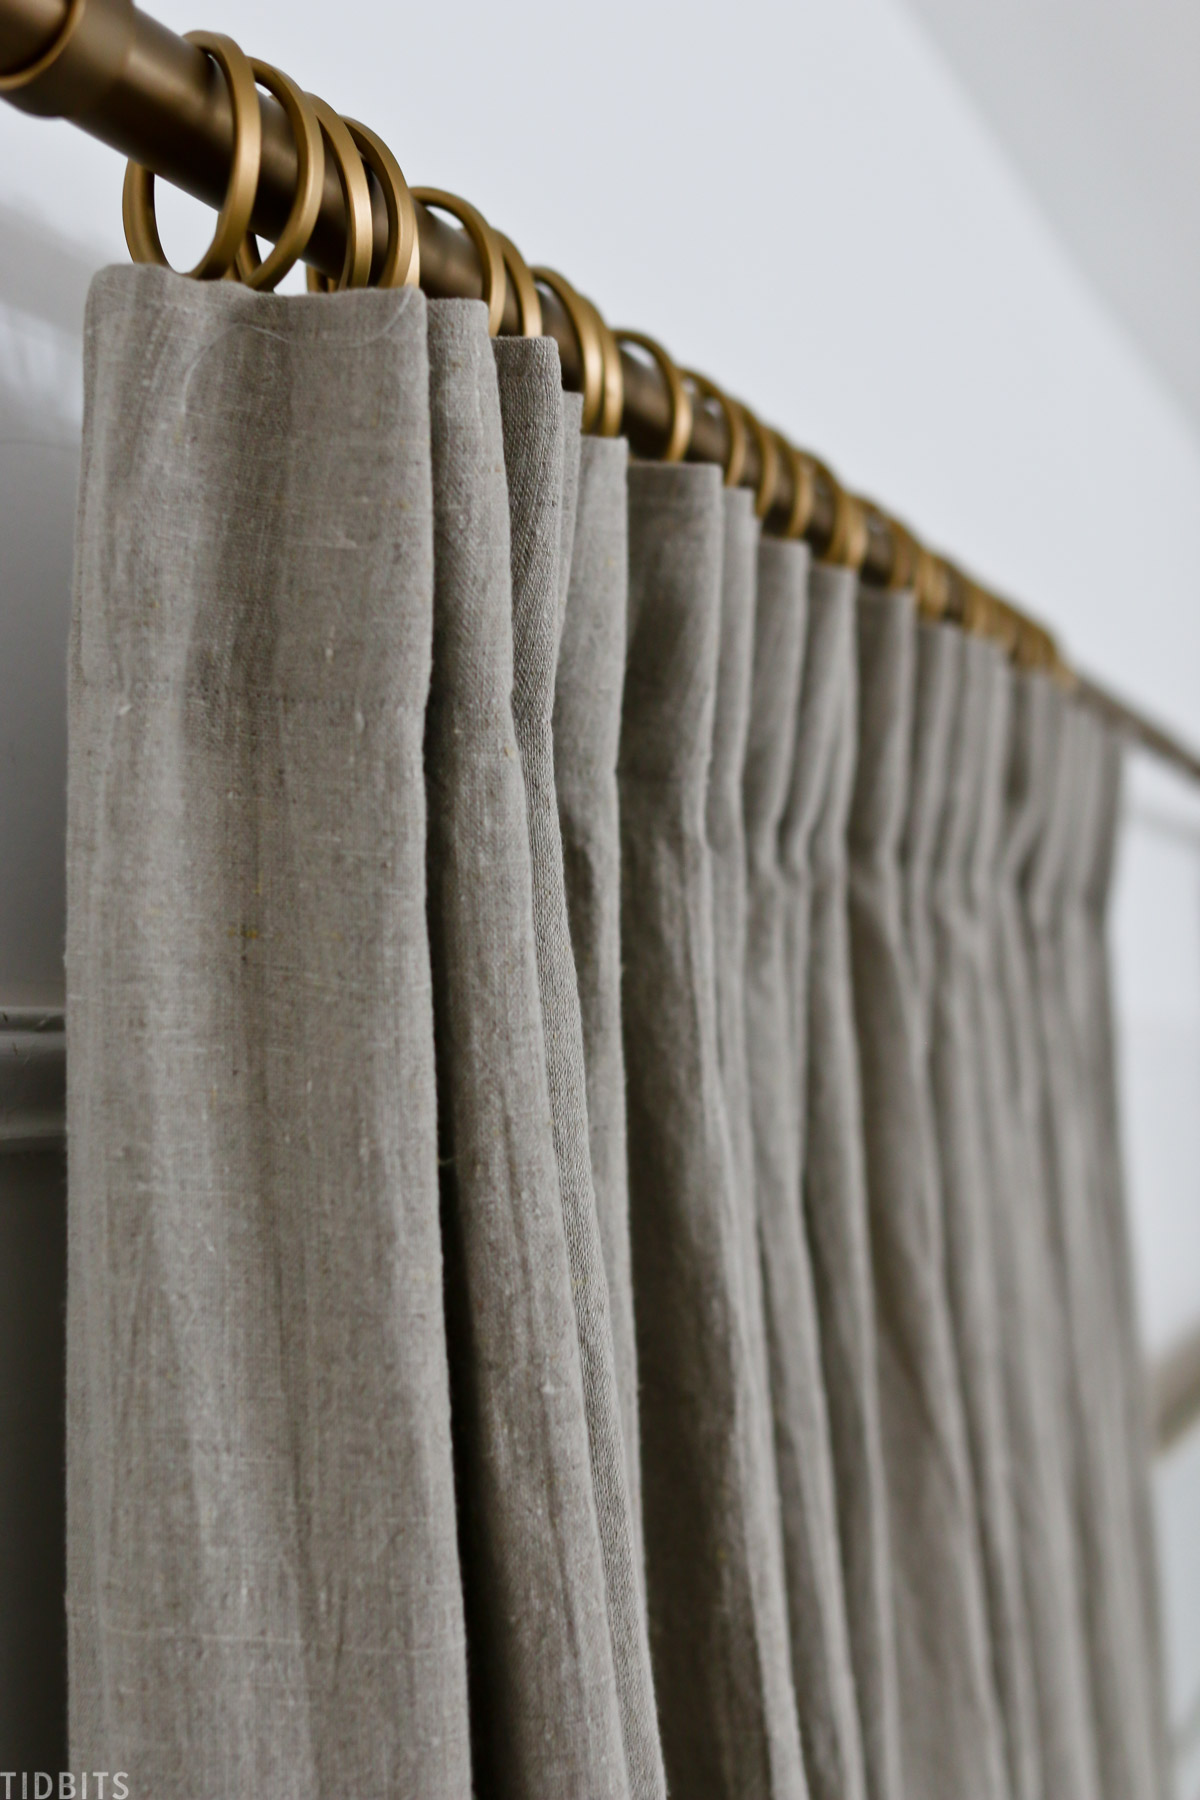 close up showing details on the DIY pleated curtains while it's hung on a golden curtain rod with golden curtain rod rings